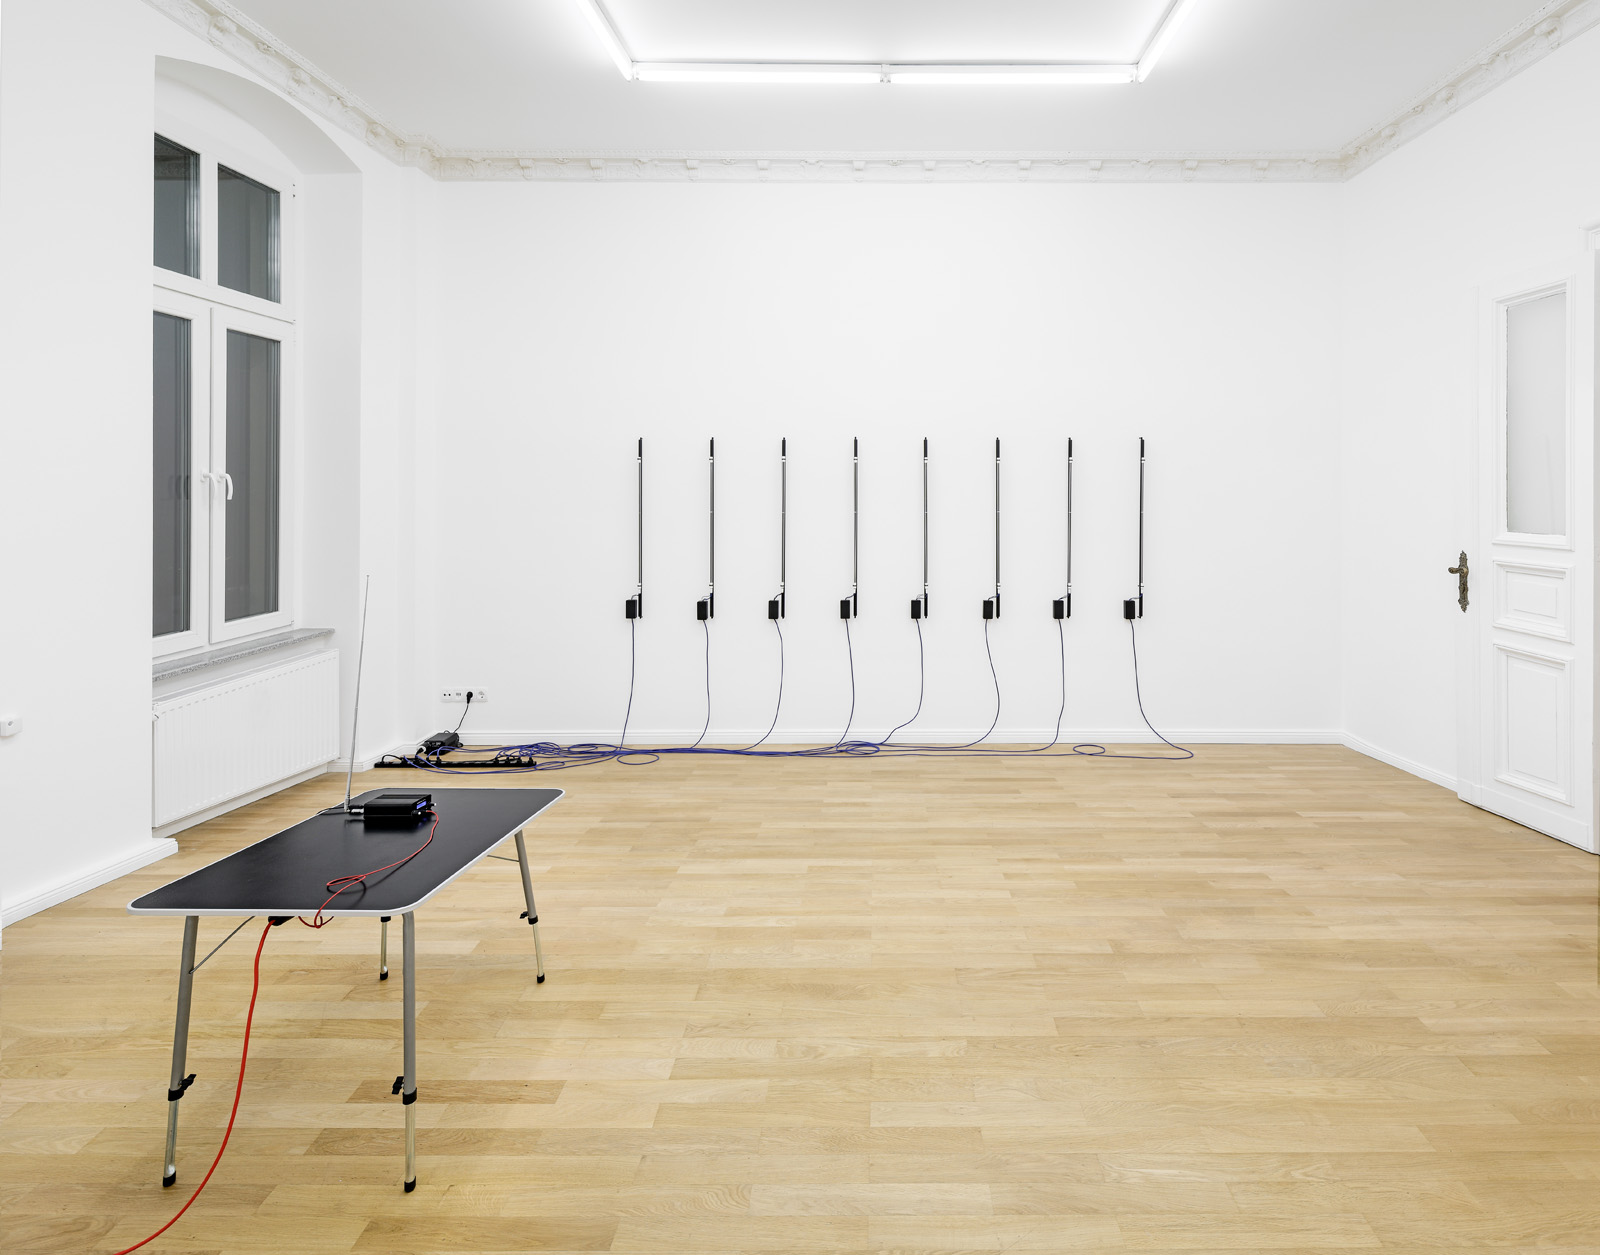 Installation view, Christopher Aque,  Red-blooded, White-skinned, and the Blues  Foreground:  Transmission , 2018 (FM transmitter); Background:  Erasure (en masse) , 2018